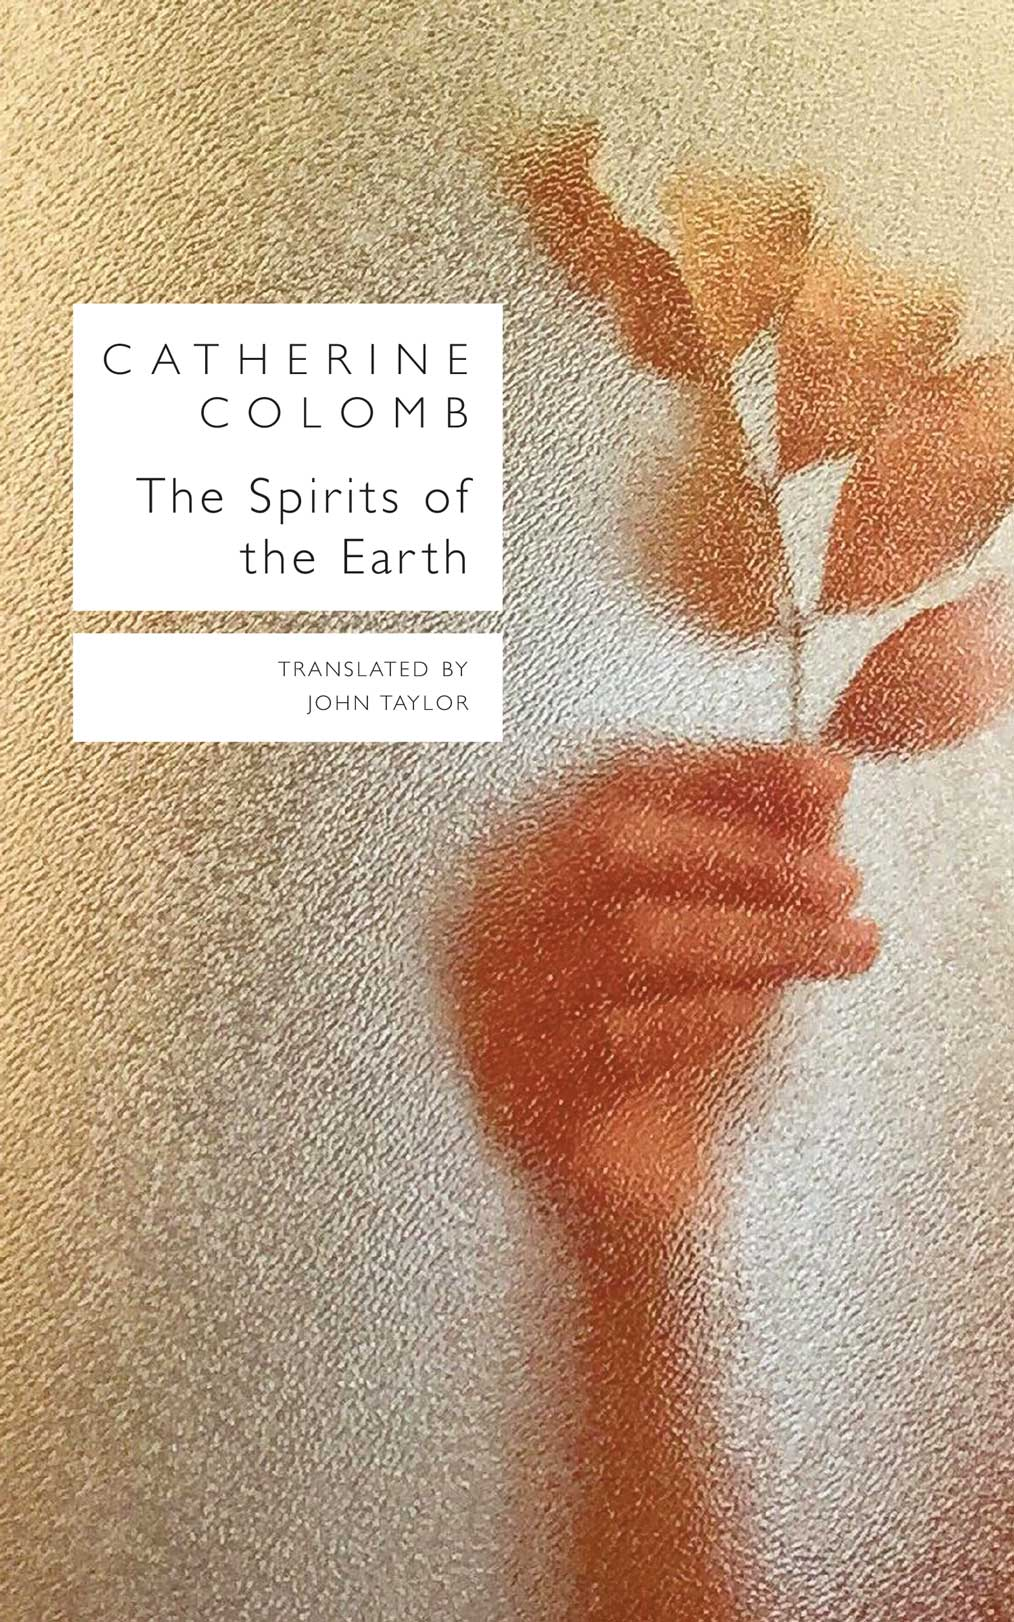 The Spirits of the Earth by Catherine Colomb | Seagull Books